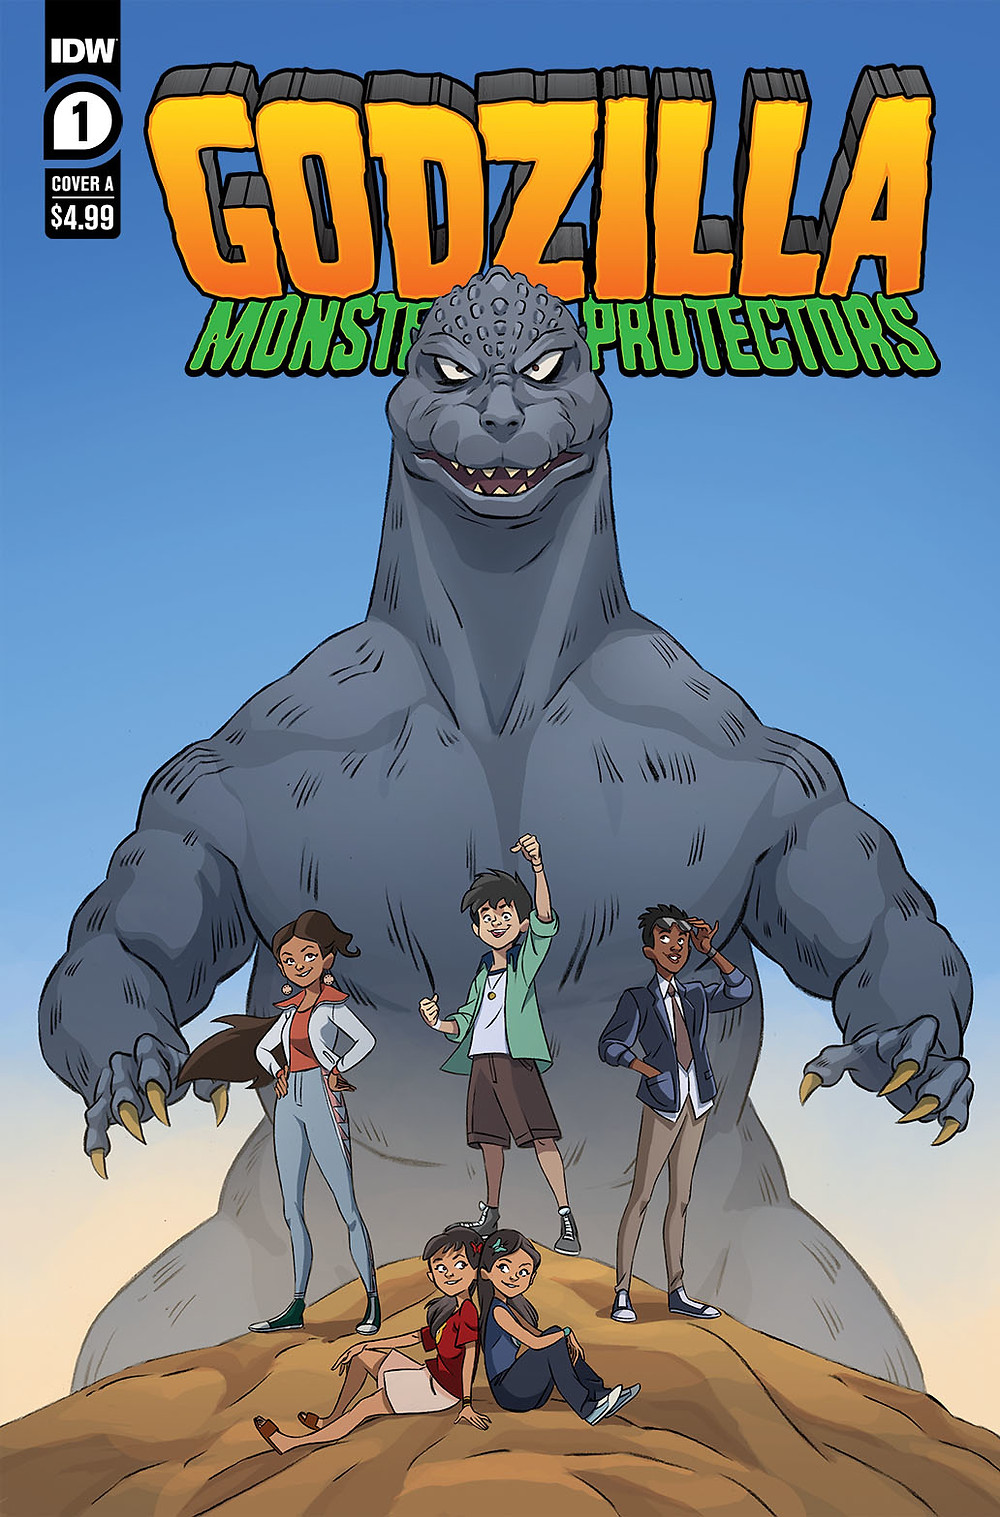 Godzilla: Monsters and Protectors #1 Cover